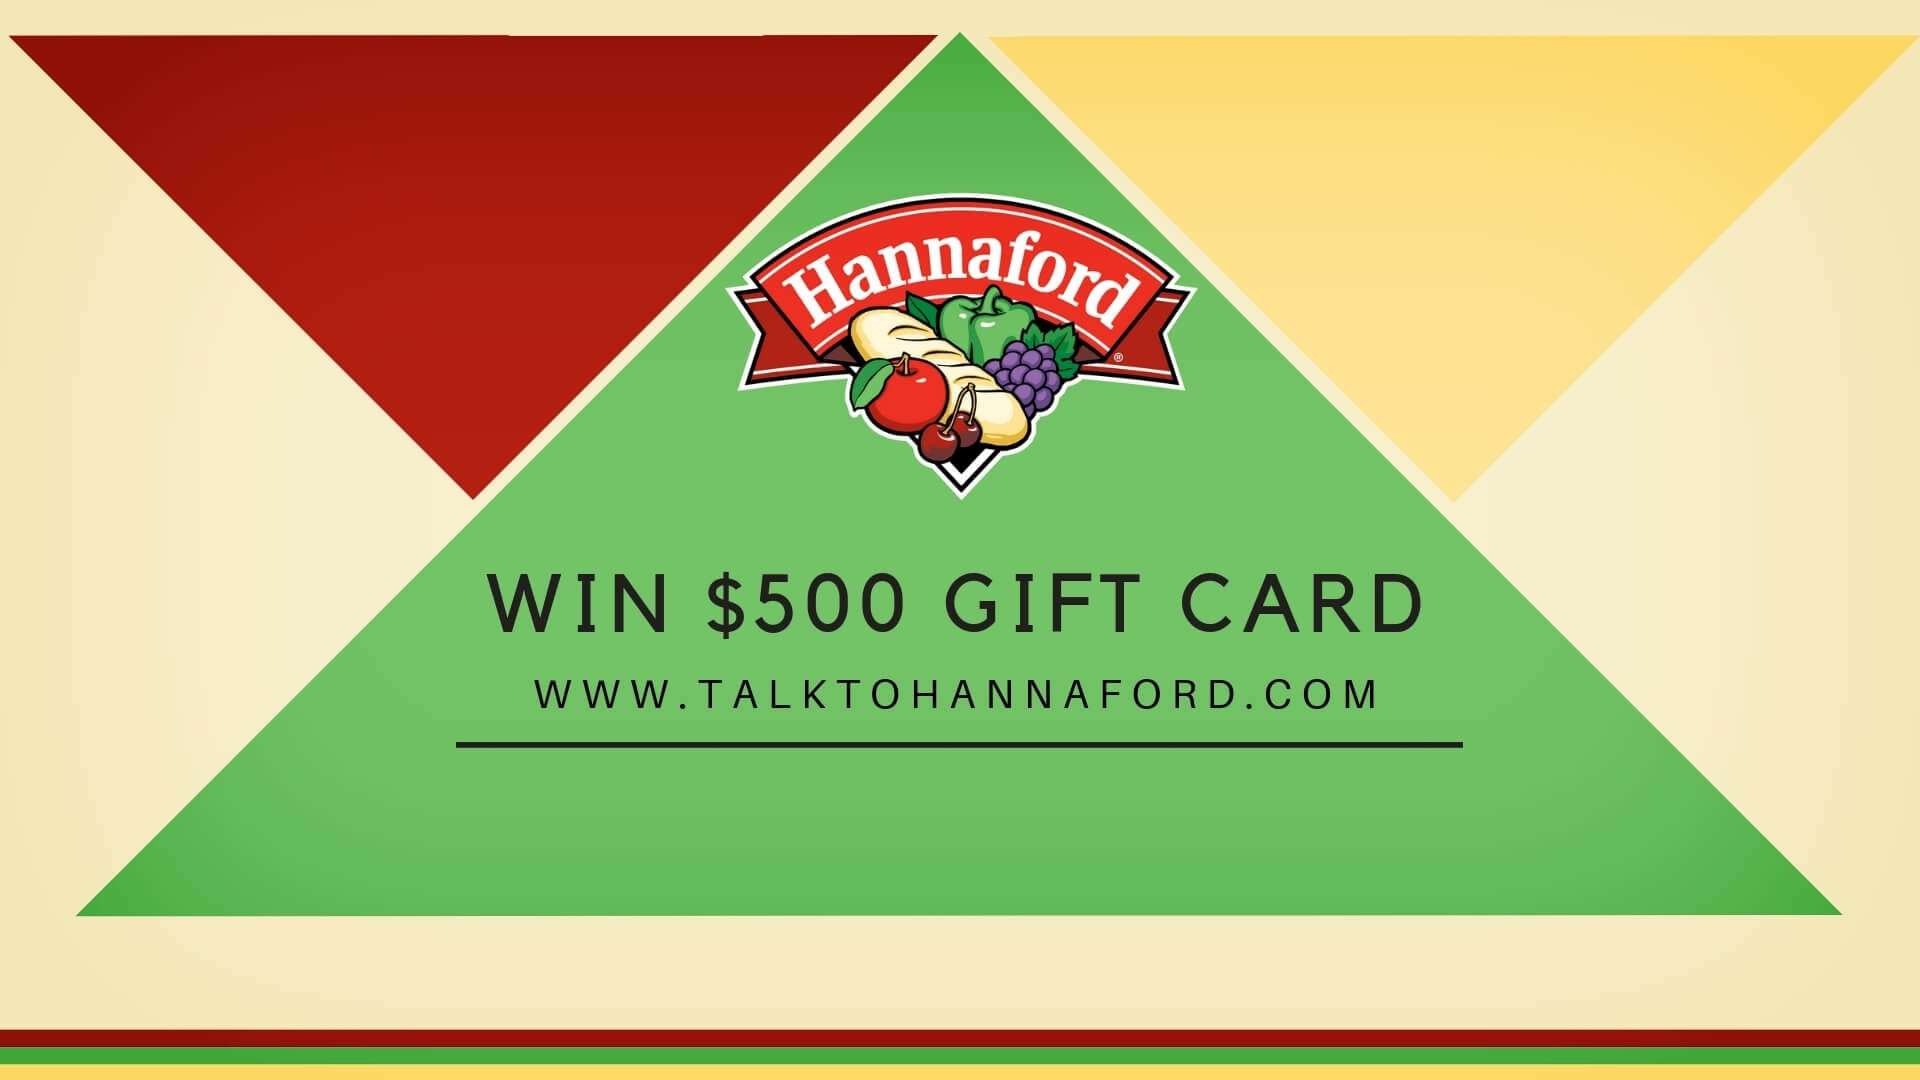 www.talktohannaford.com- Enter the Survey & Win $500 Gift Card